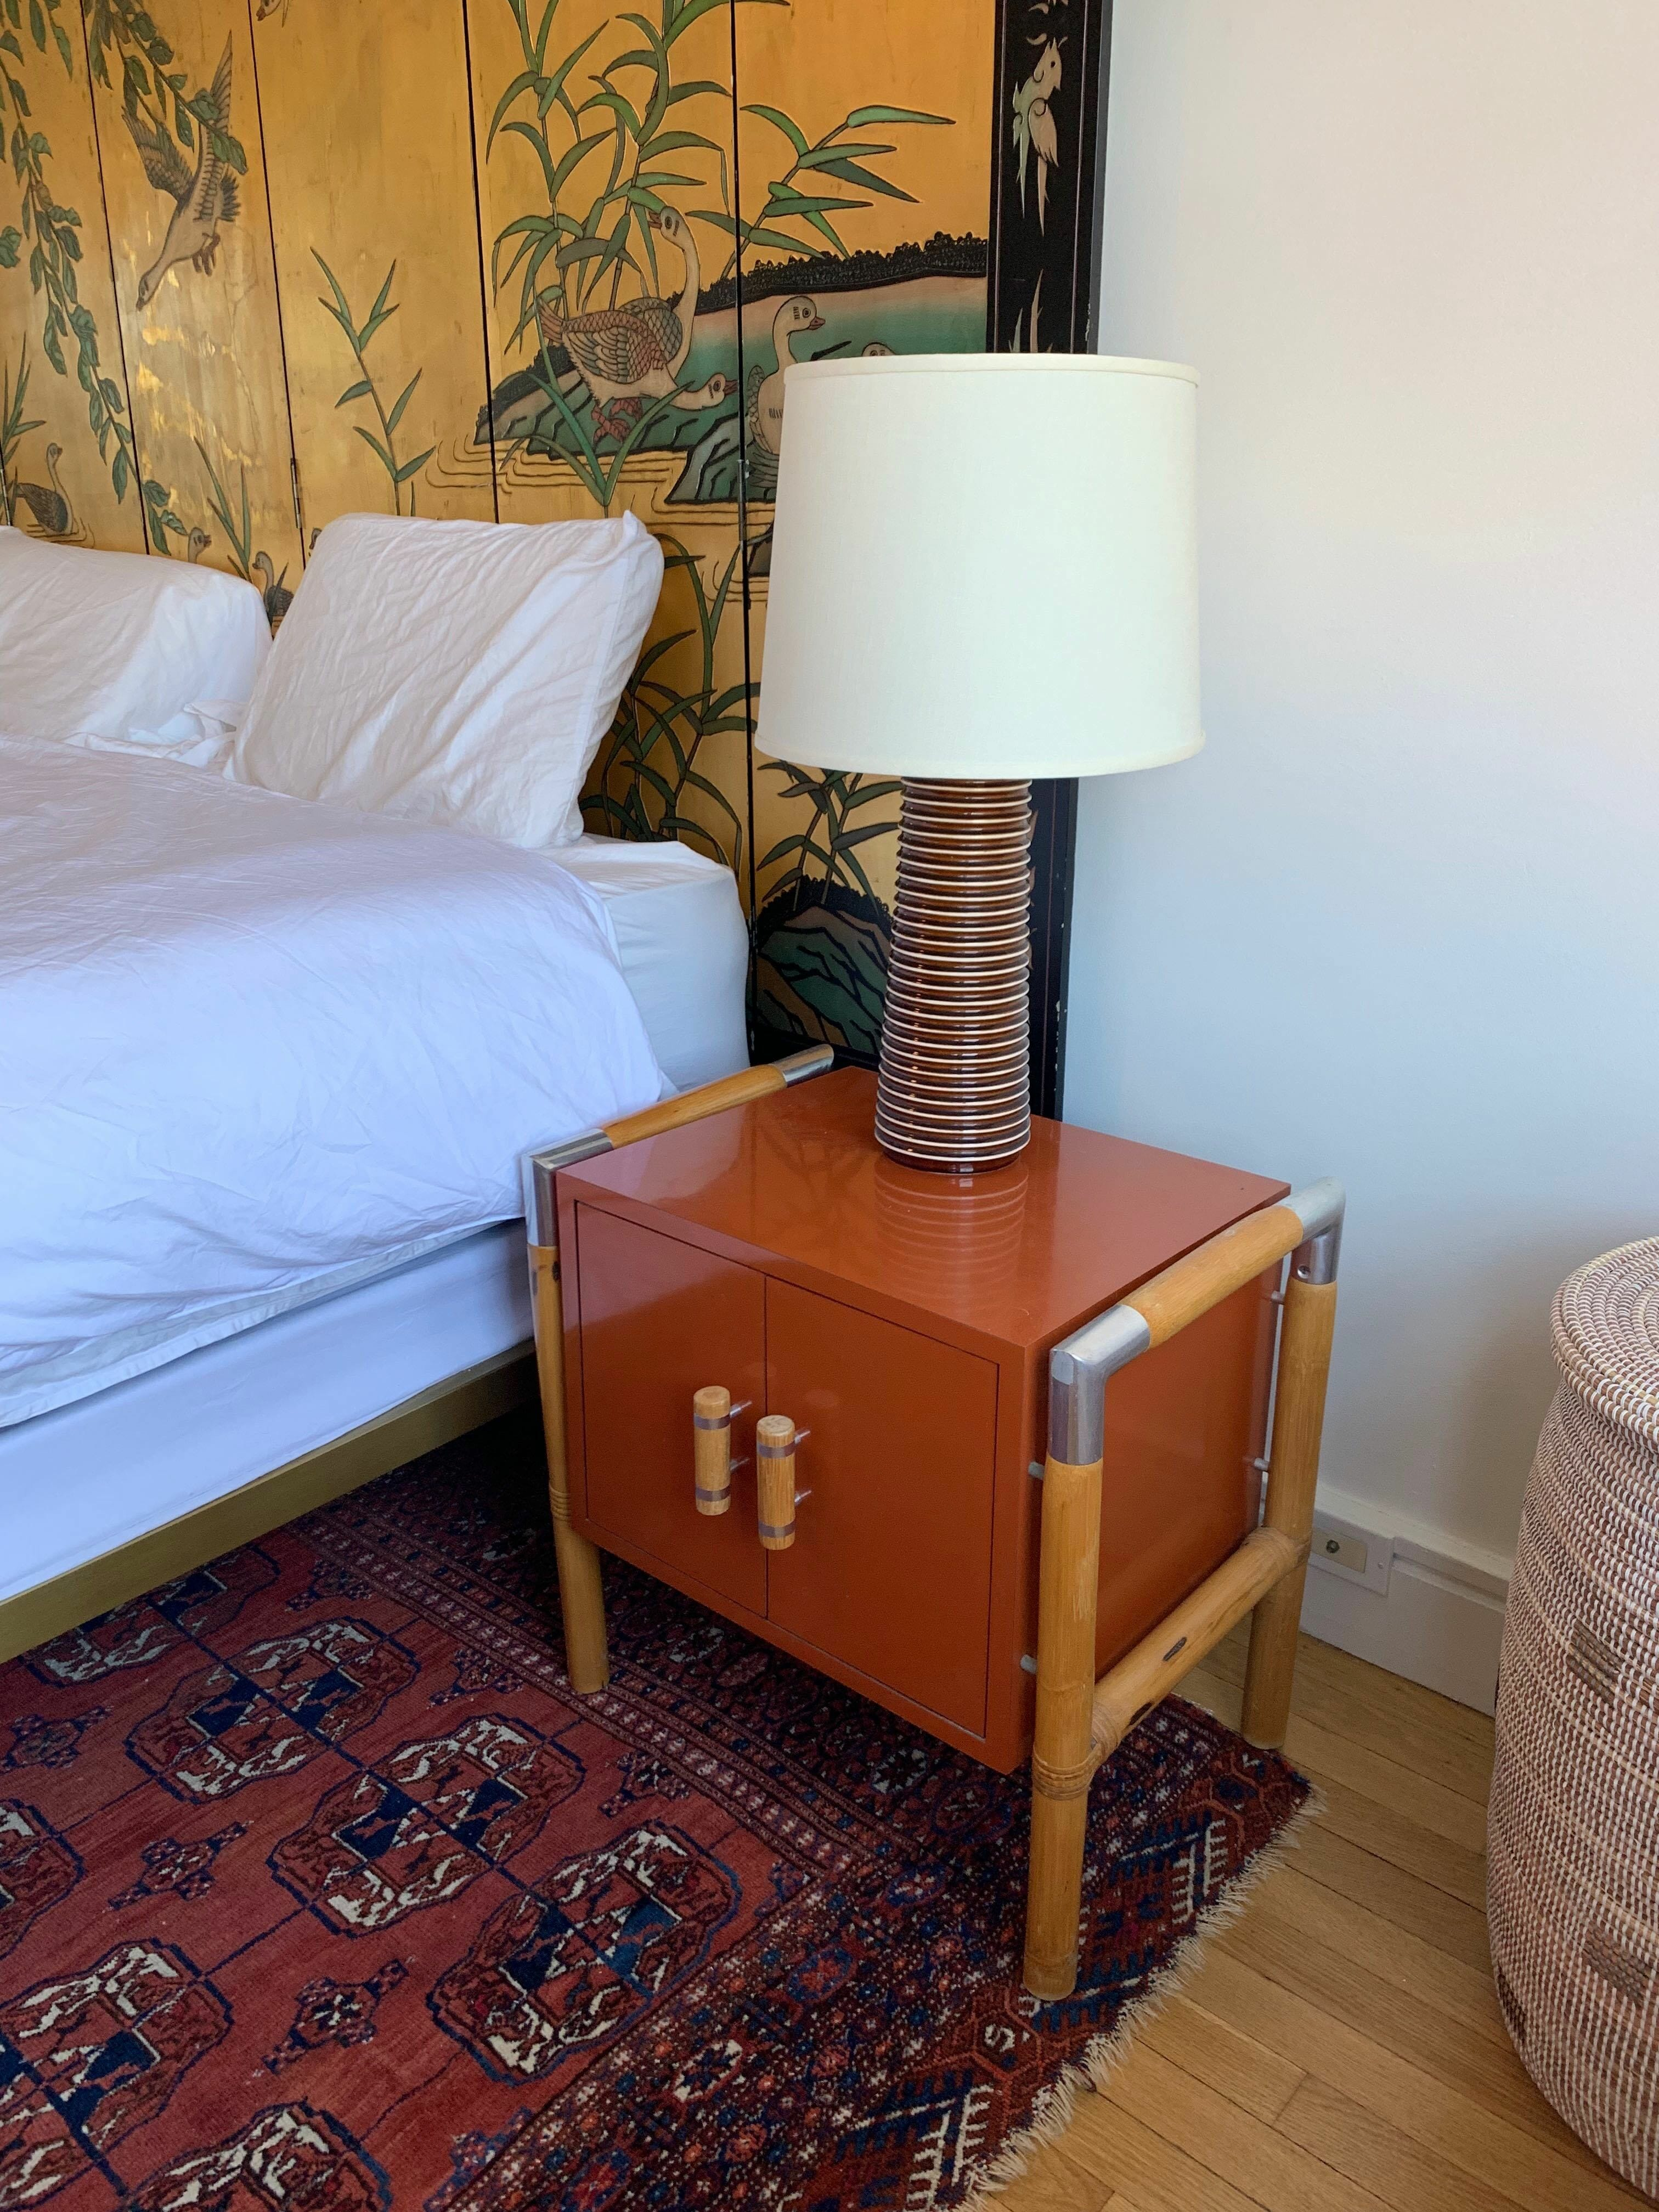 Lamp and night stand